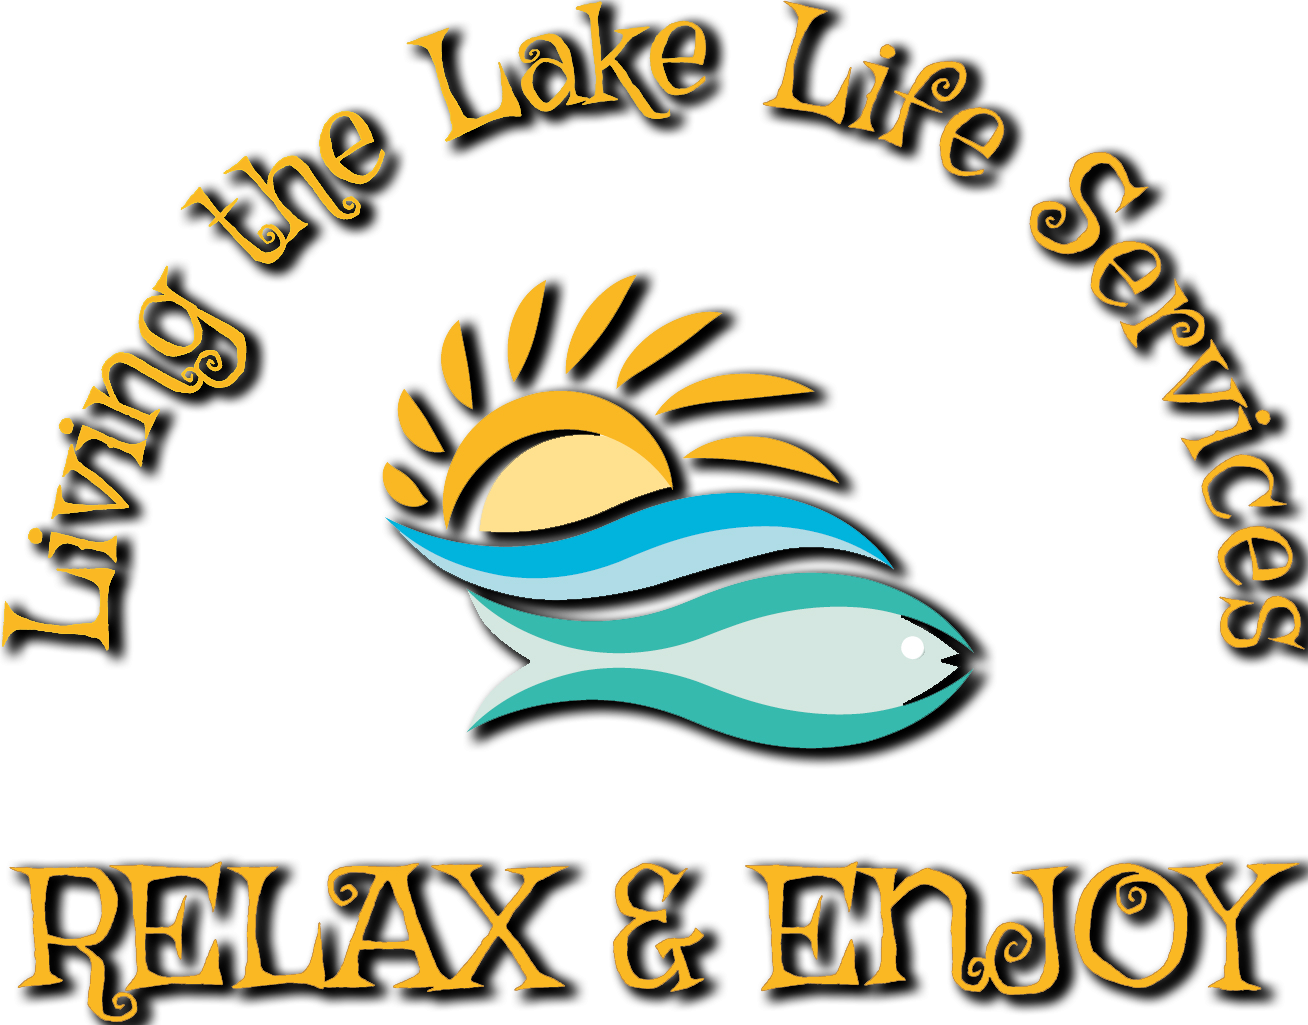 Clean clipart general cleaning. Living the lake life